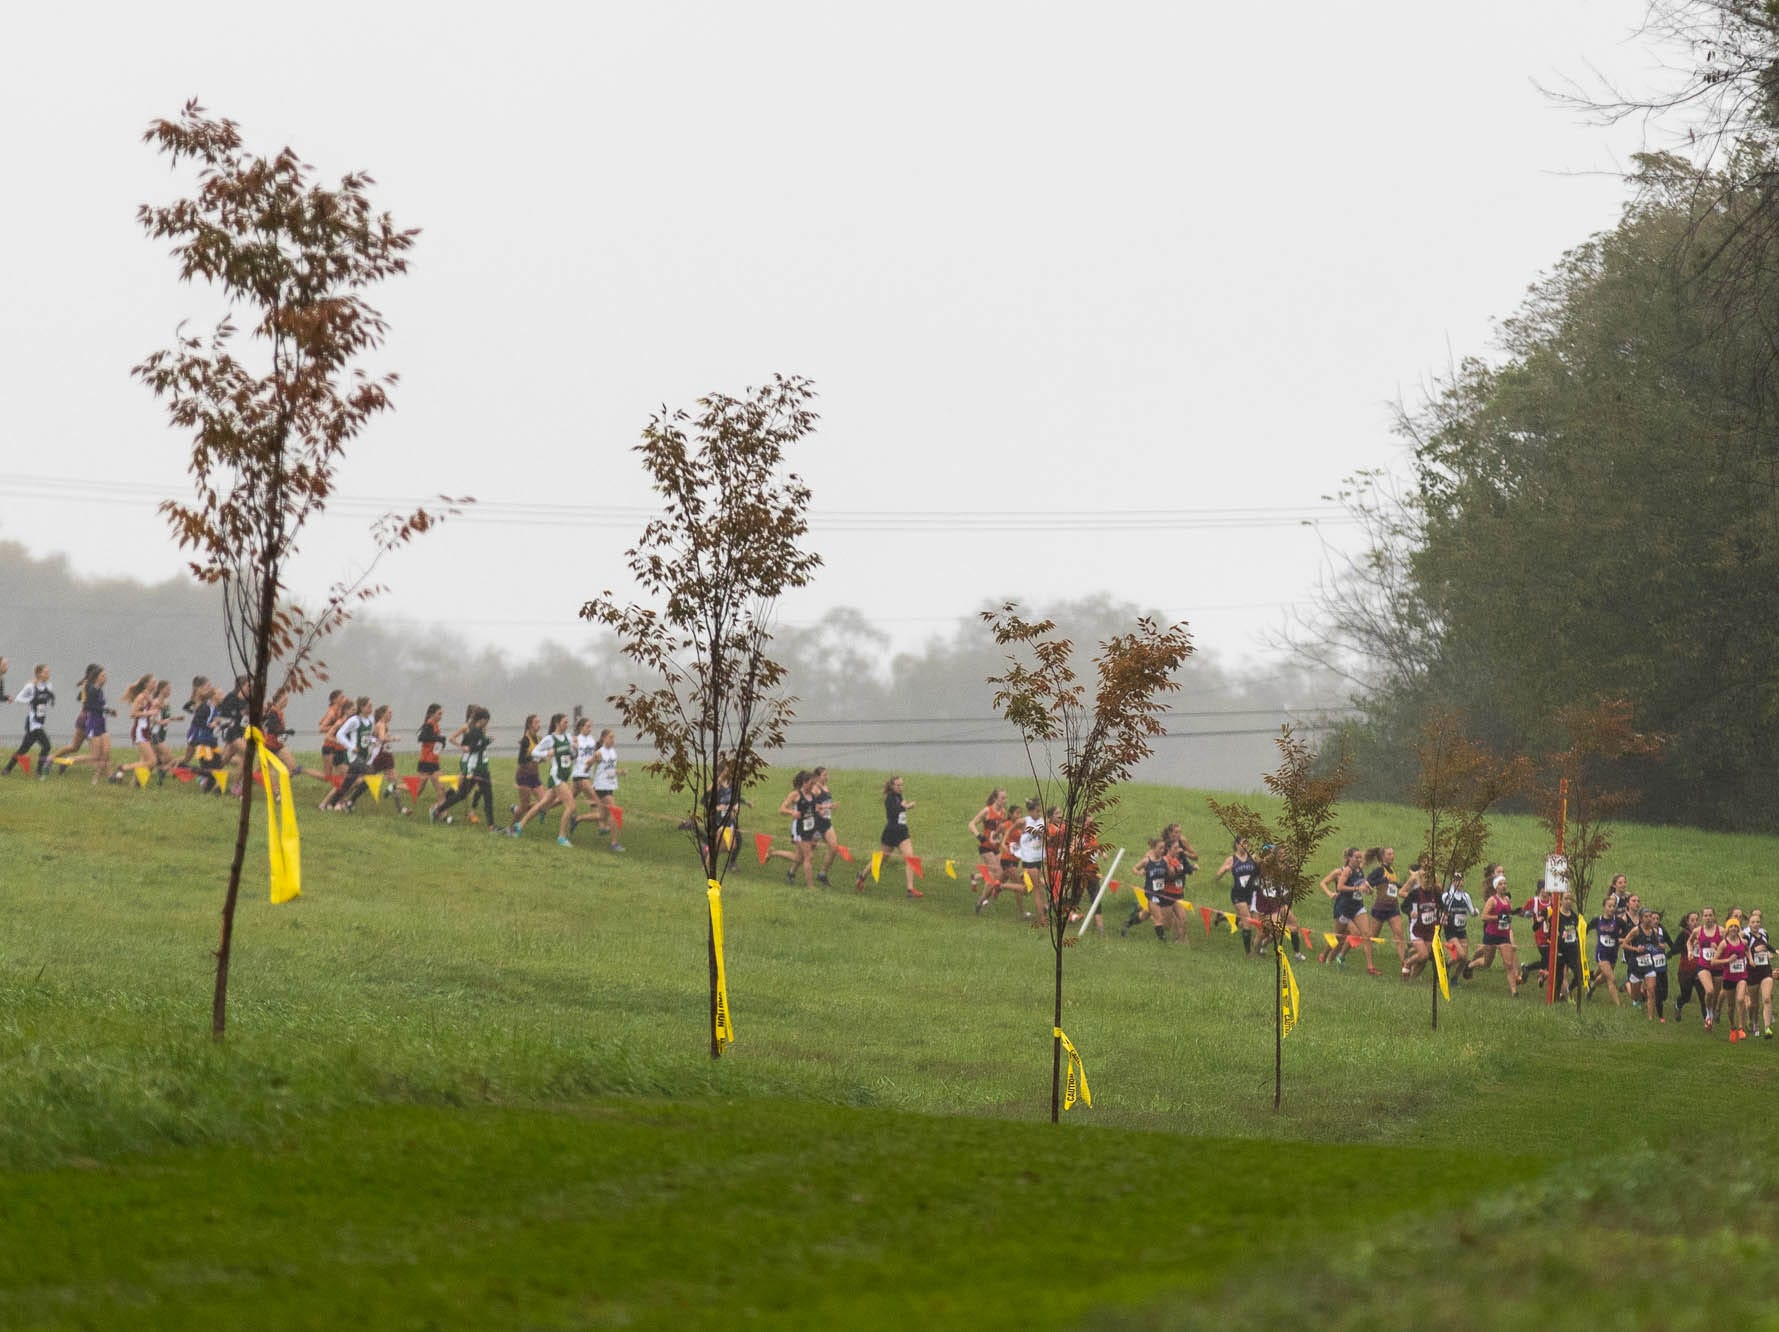 Runners in the Girls AA race round the first corner during the PIAA District III Cross Country Championship, Saturday, Oct. 27, 2018, at Big Spring High School in Newville.